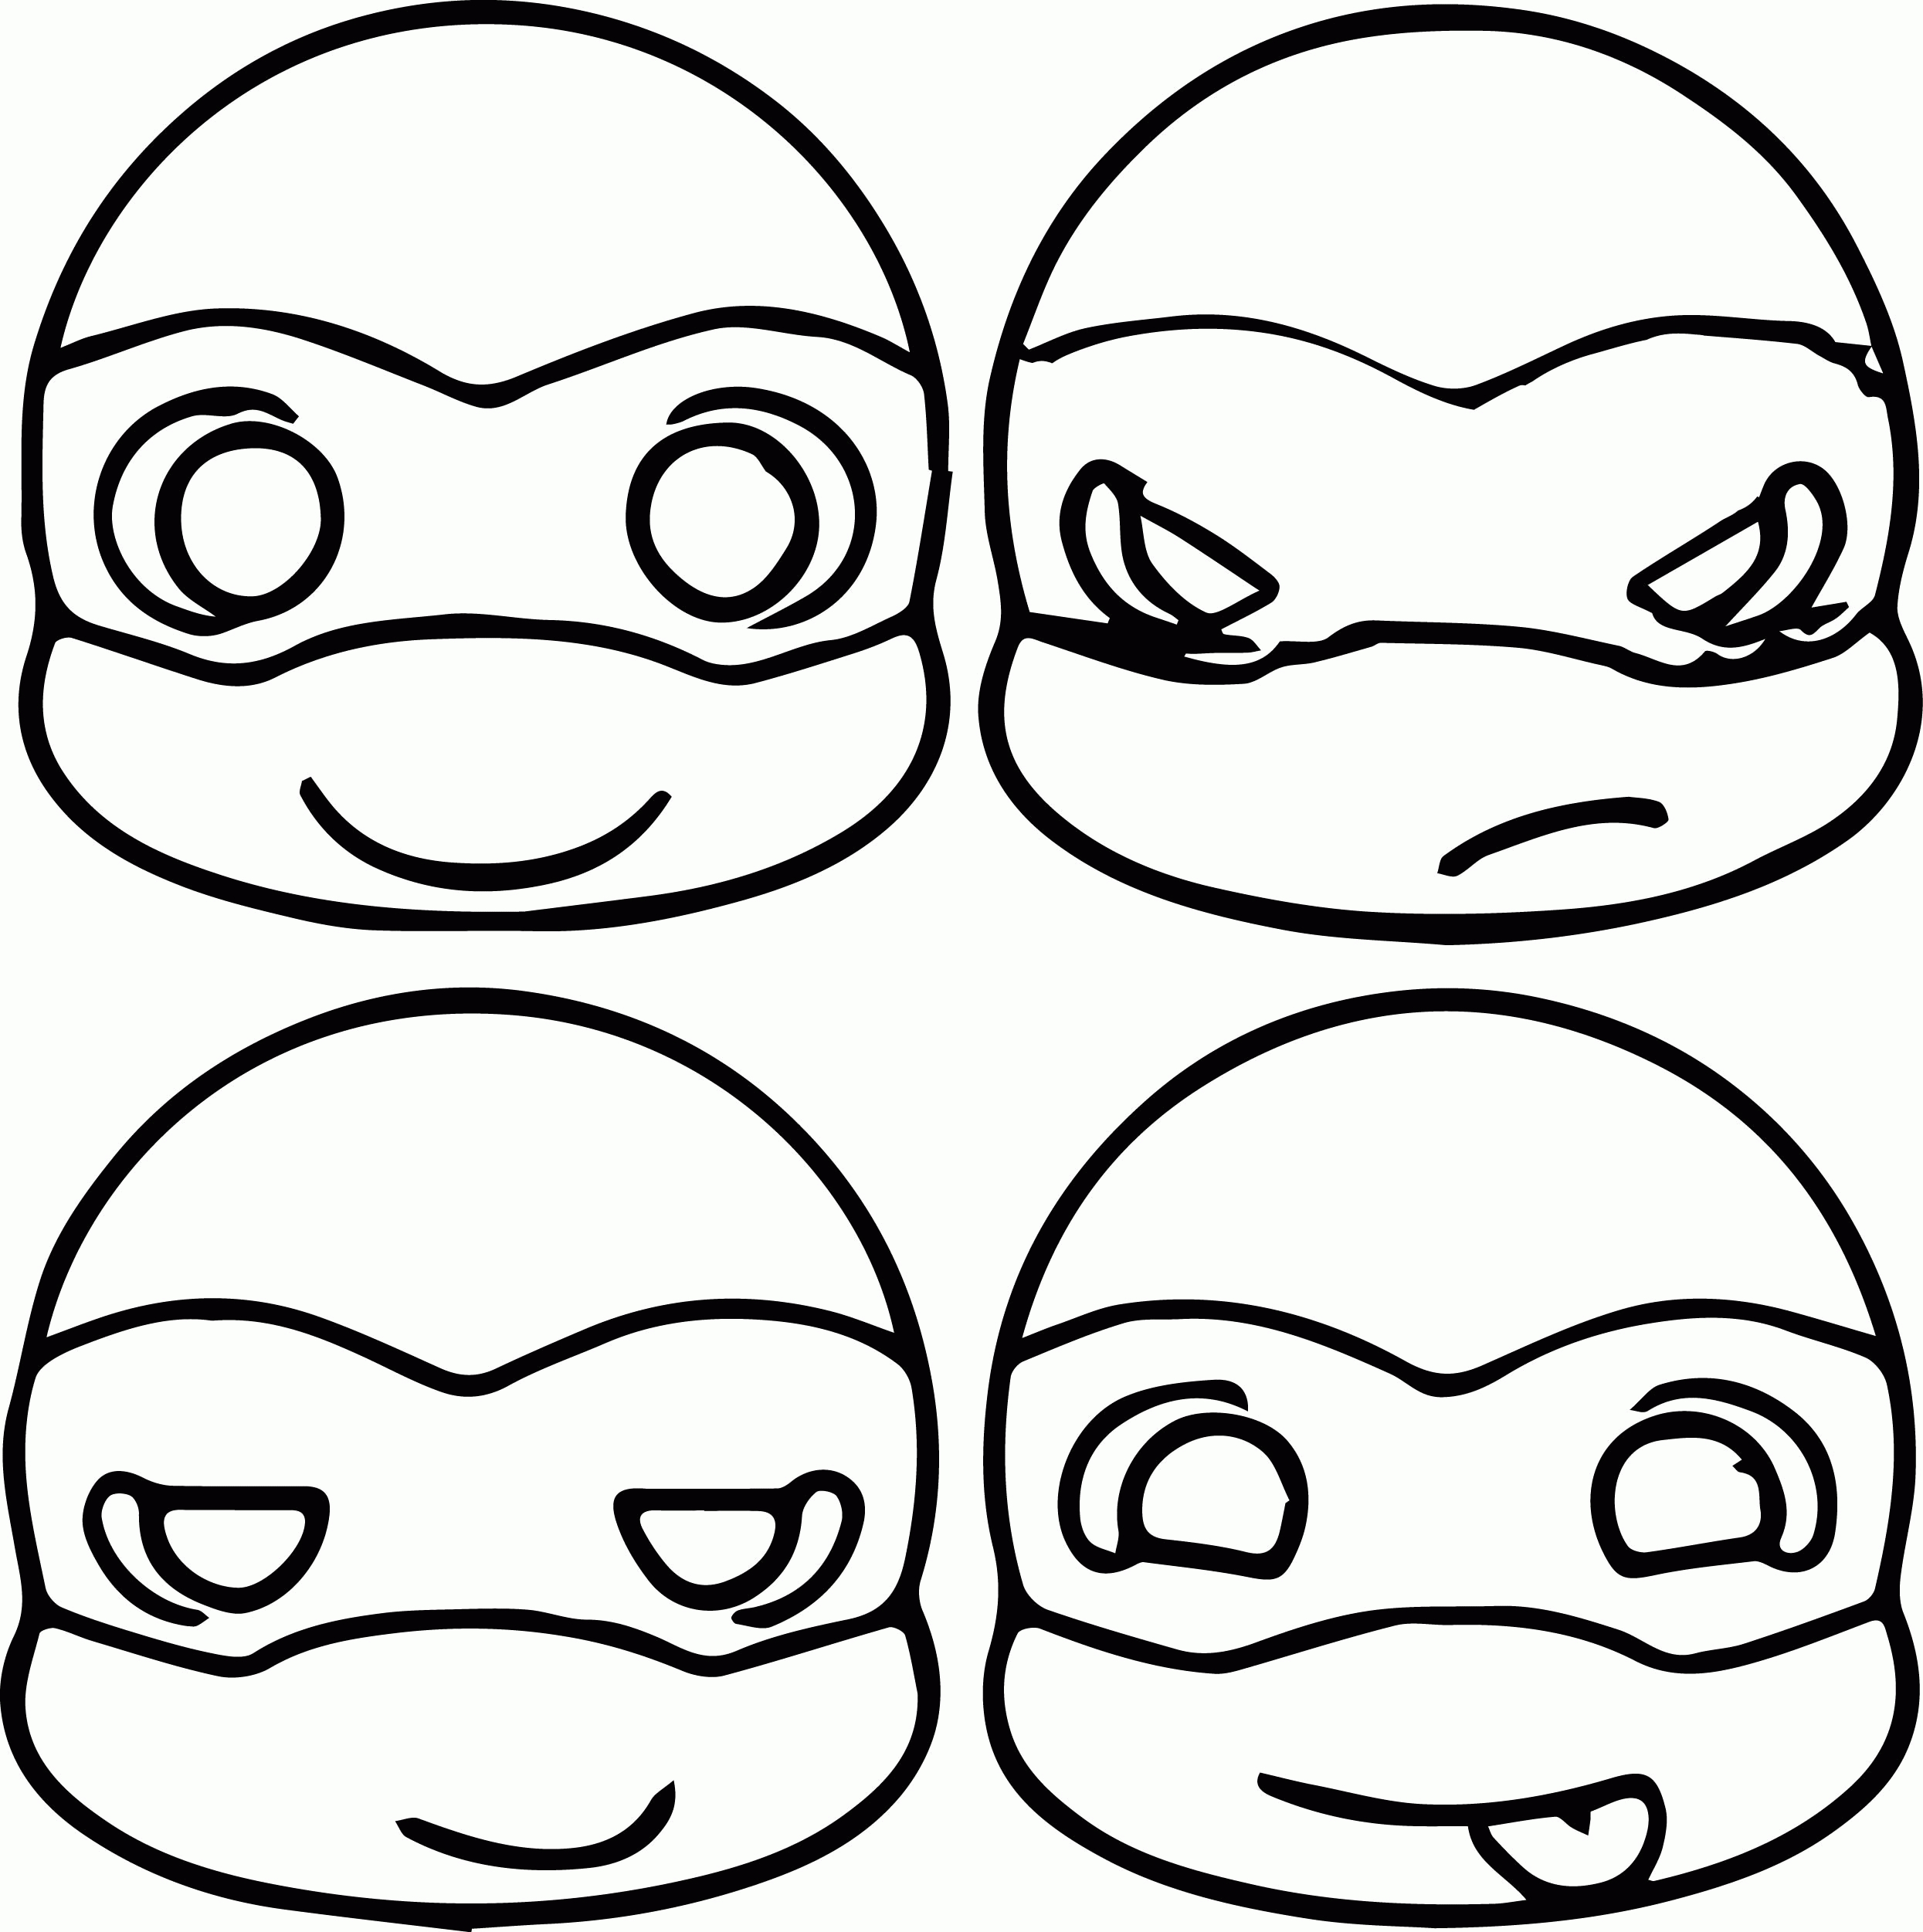 ninja mask coloring pages top 25 free printable power rangers megaforce coloring mask coloring ninja pages